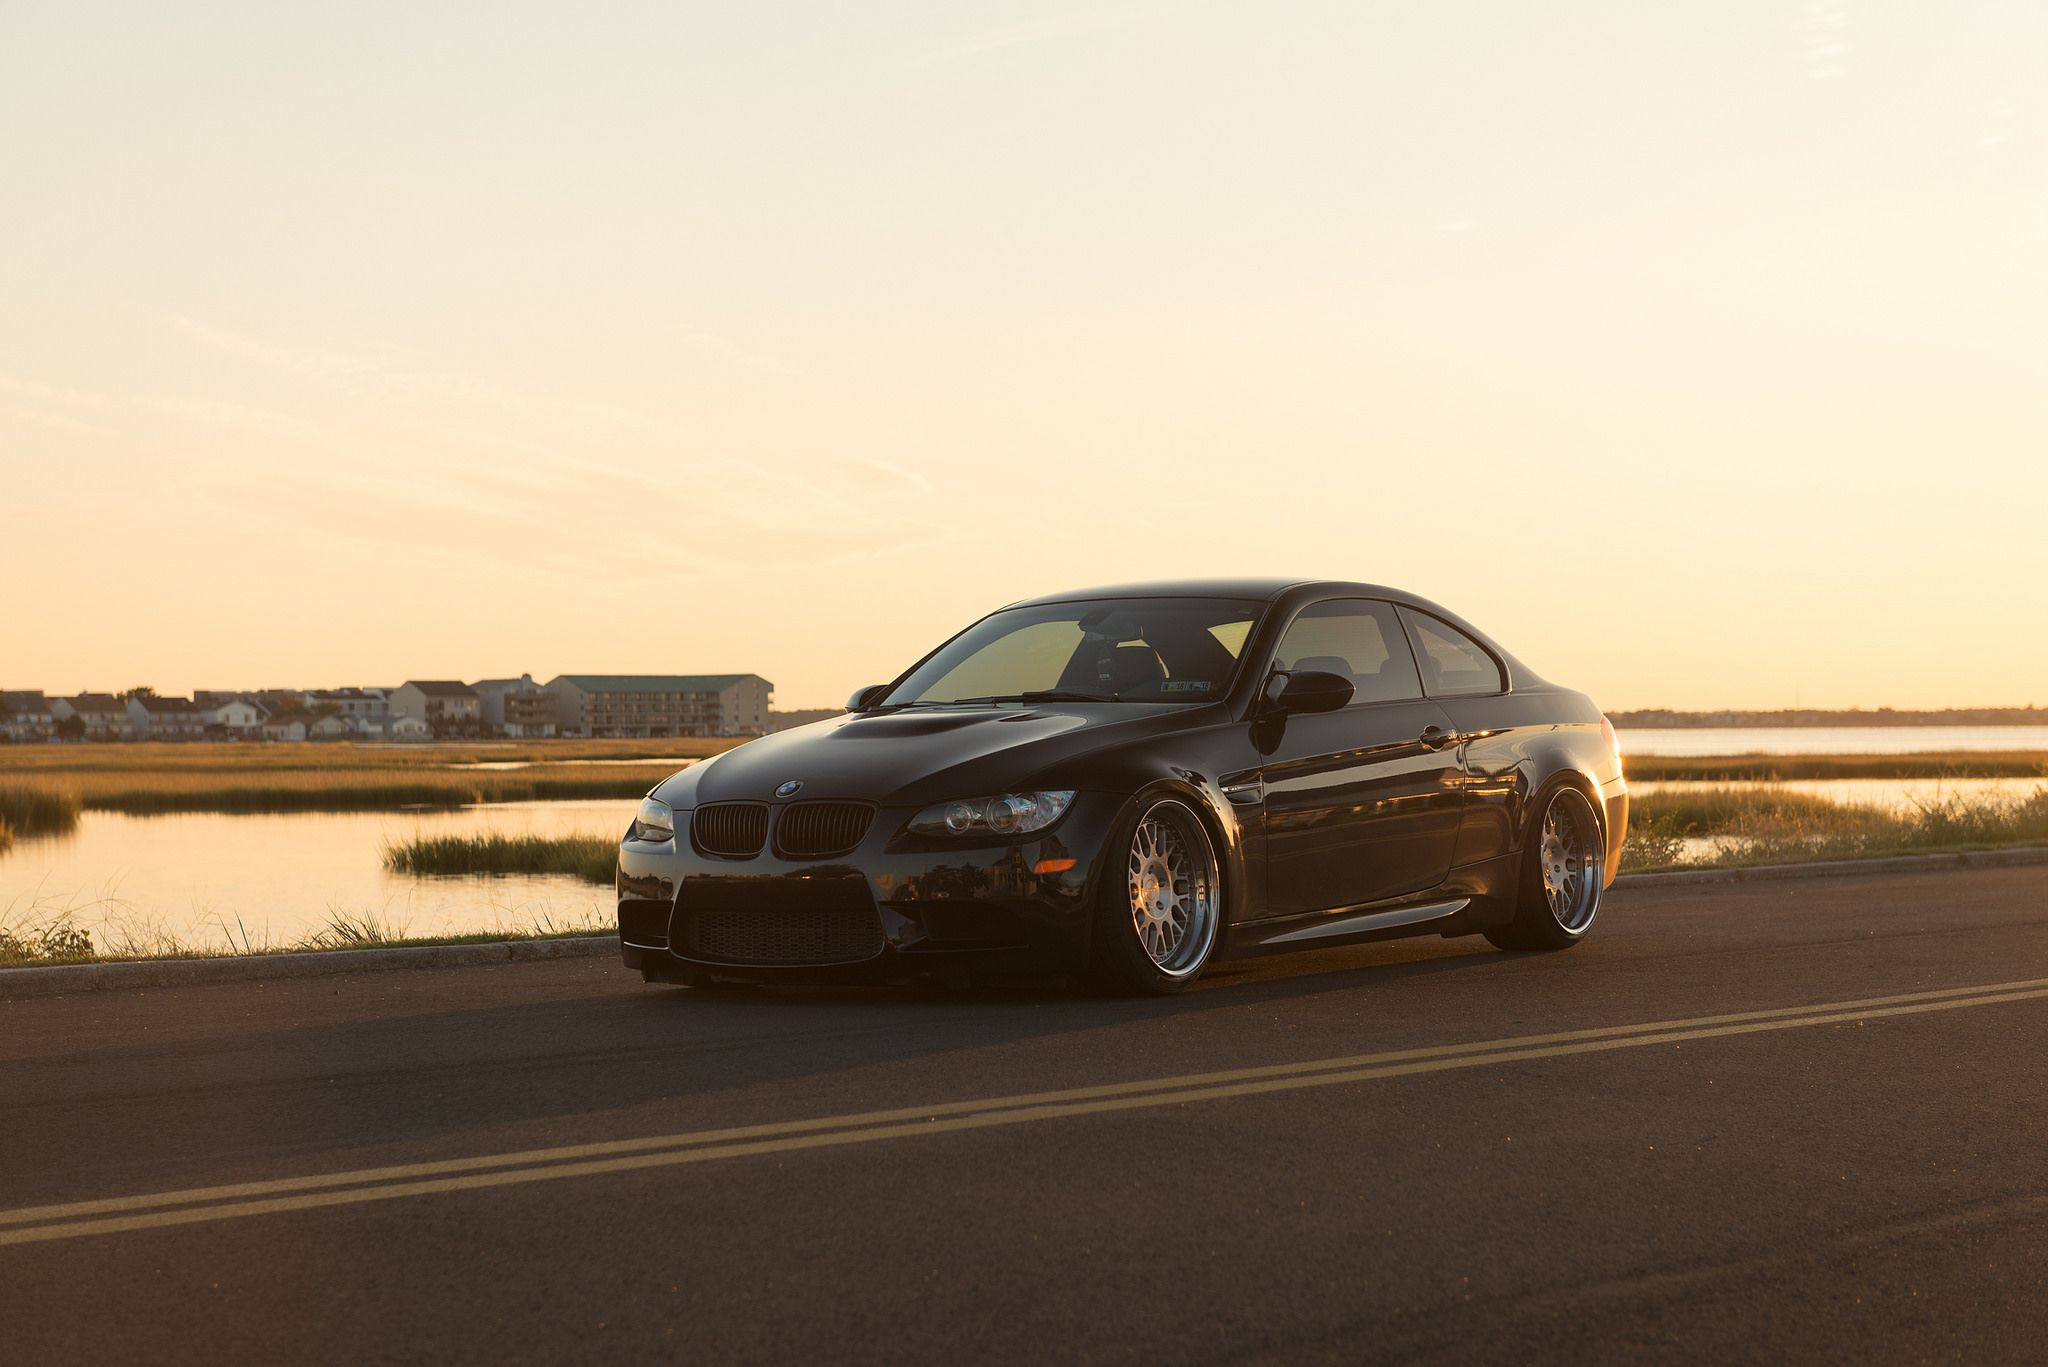 Rotiform LVS wheels - black BMW M3 coupe on a road